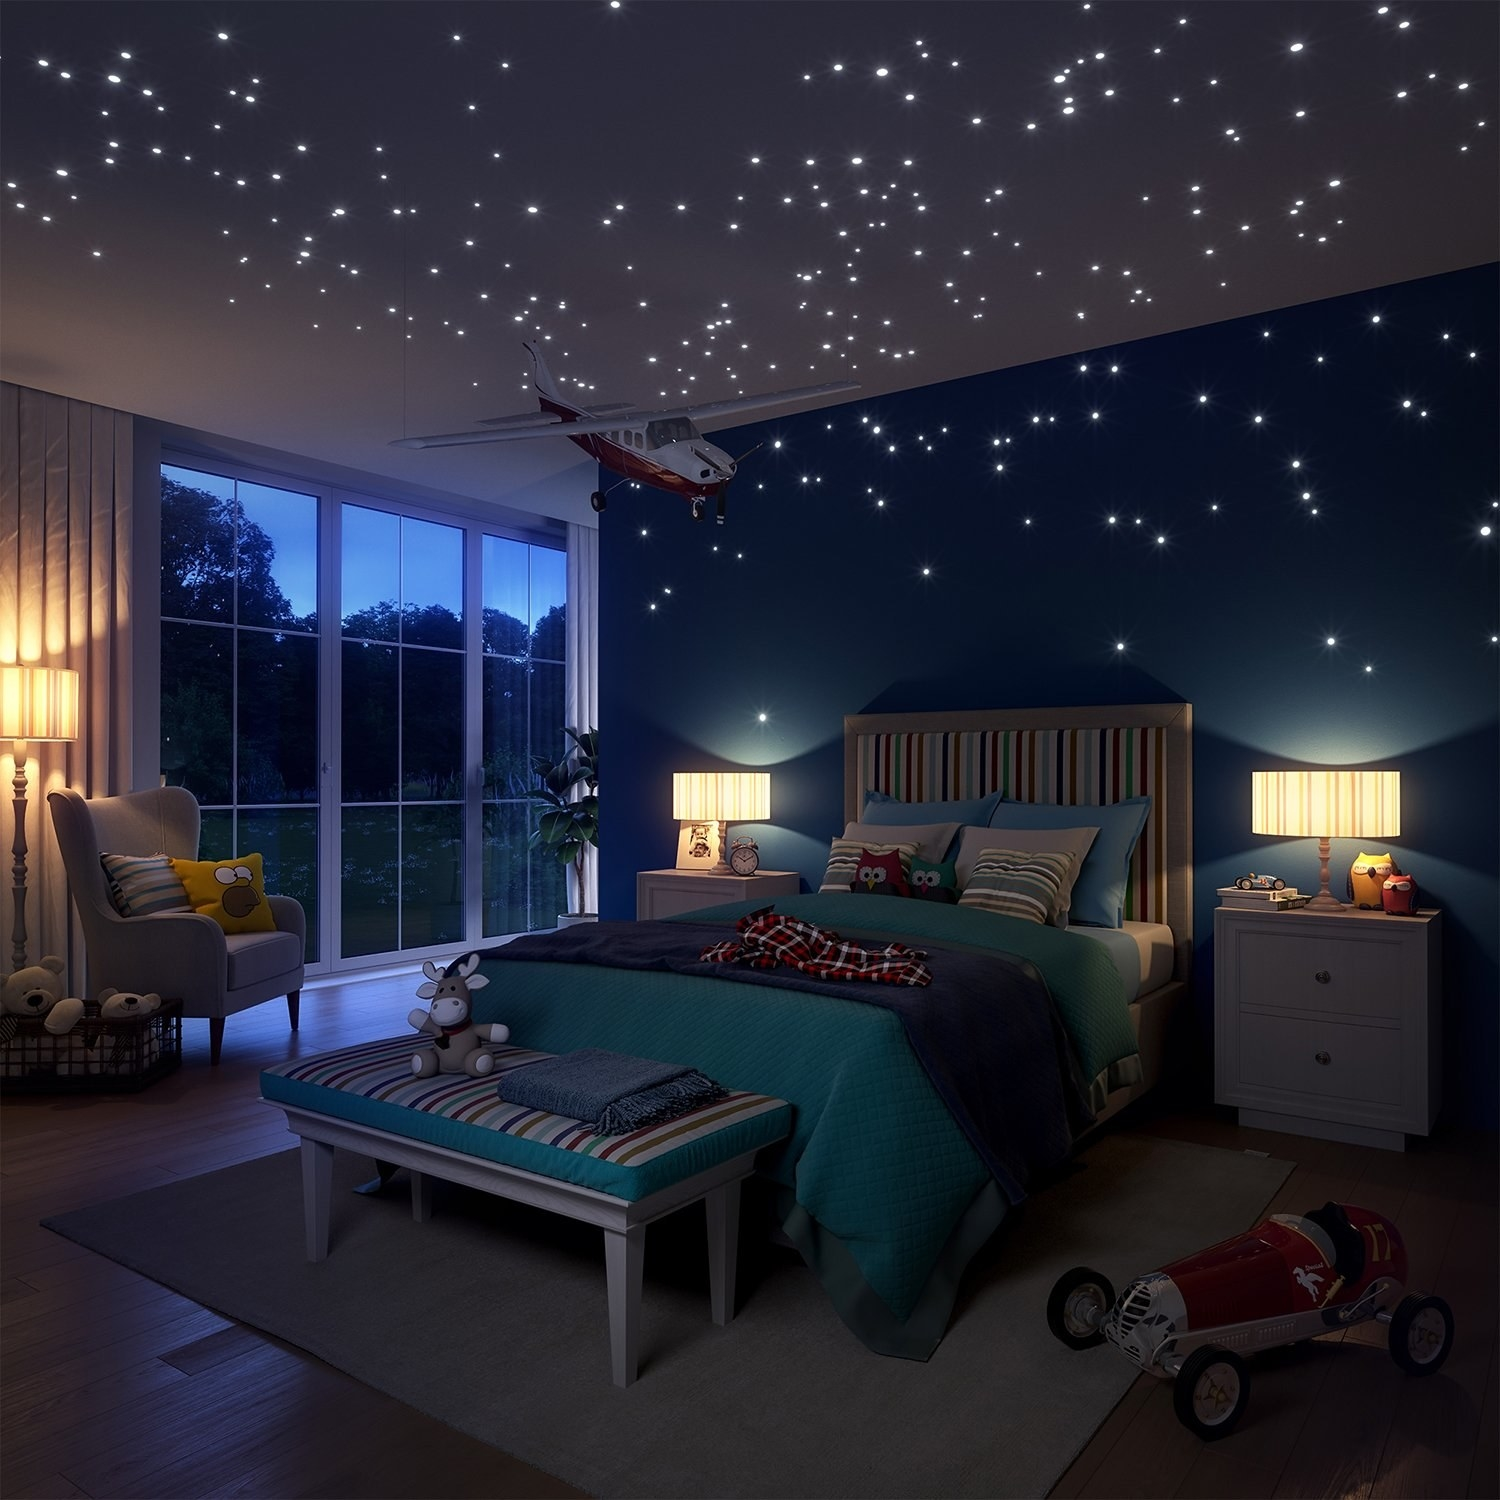 A bedroom with the glow in the dark lights scattered around the ceiling